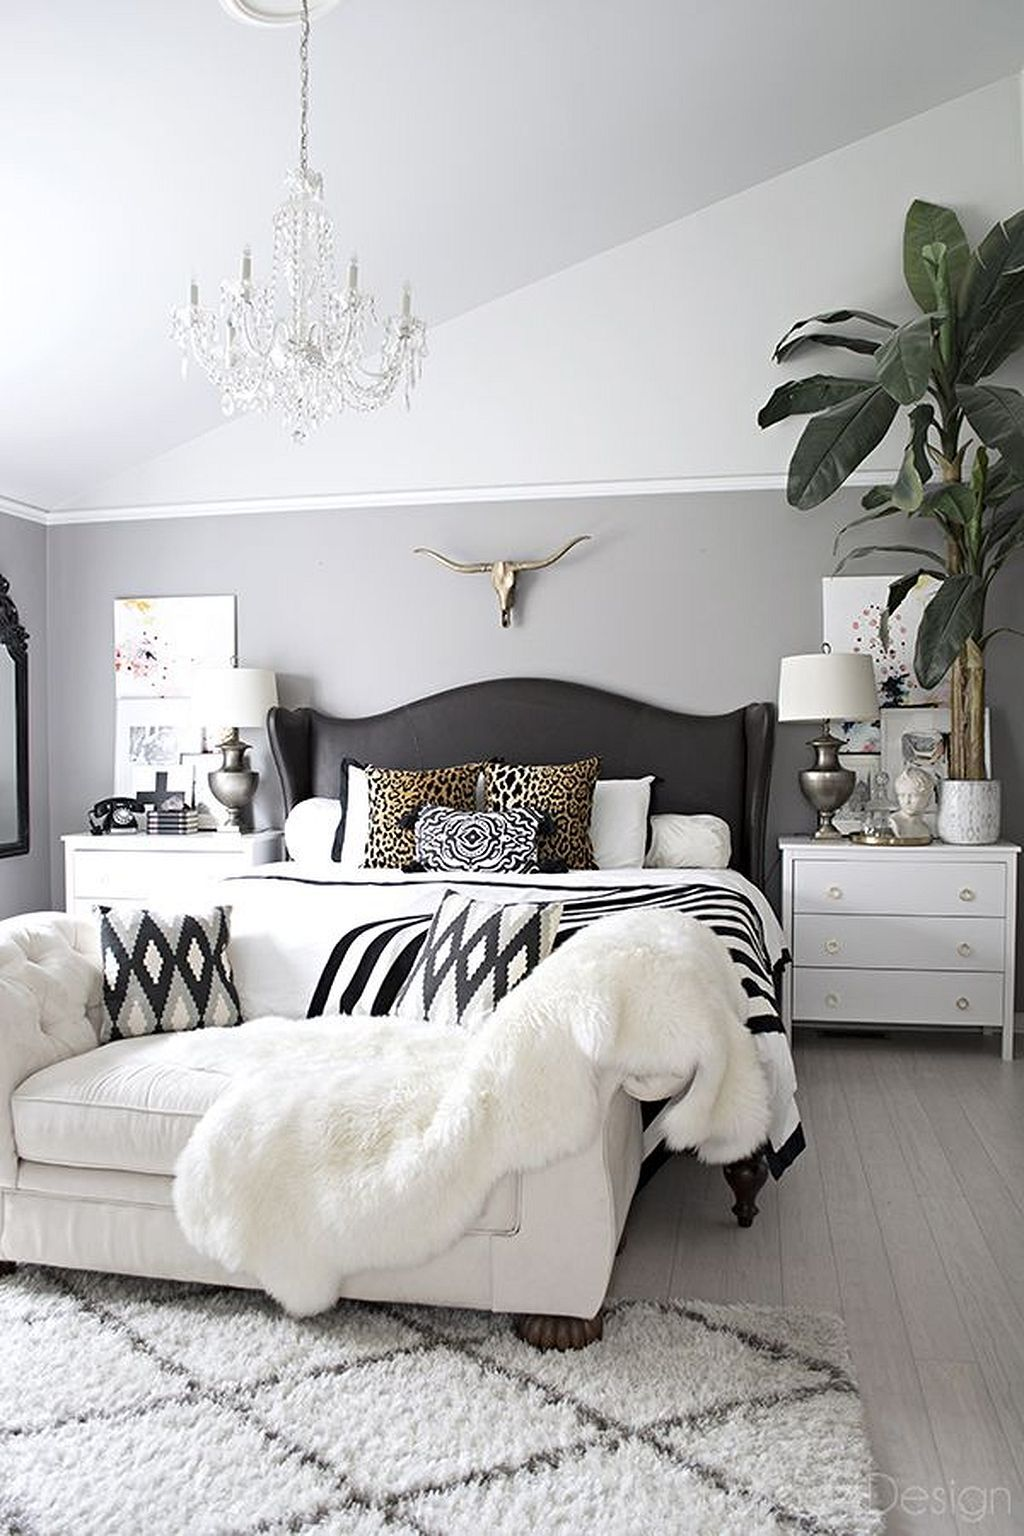 Interior design of master bedroom  white and grey master bedroom interior design ideas  bedroom